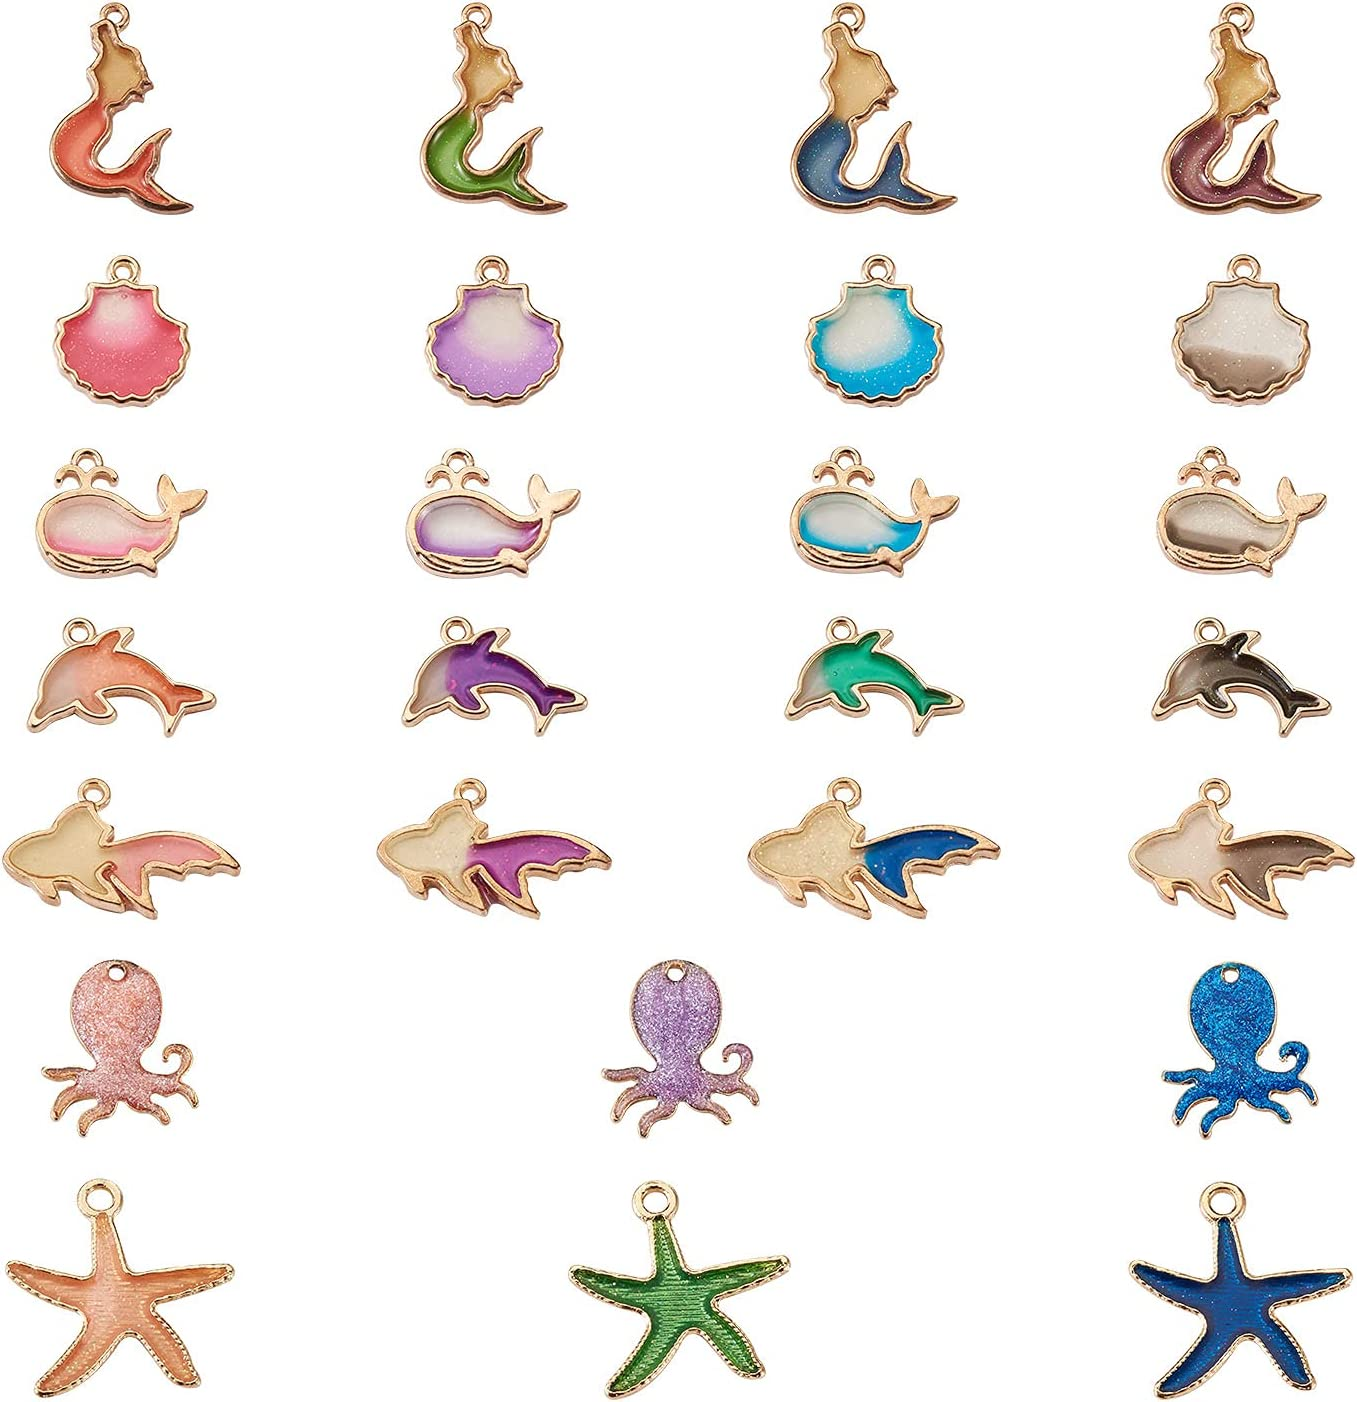 Cheriswelry 52pcs Ocean Award Style Alloy Resin Limited Special Price Pendants with Enamel C